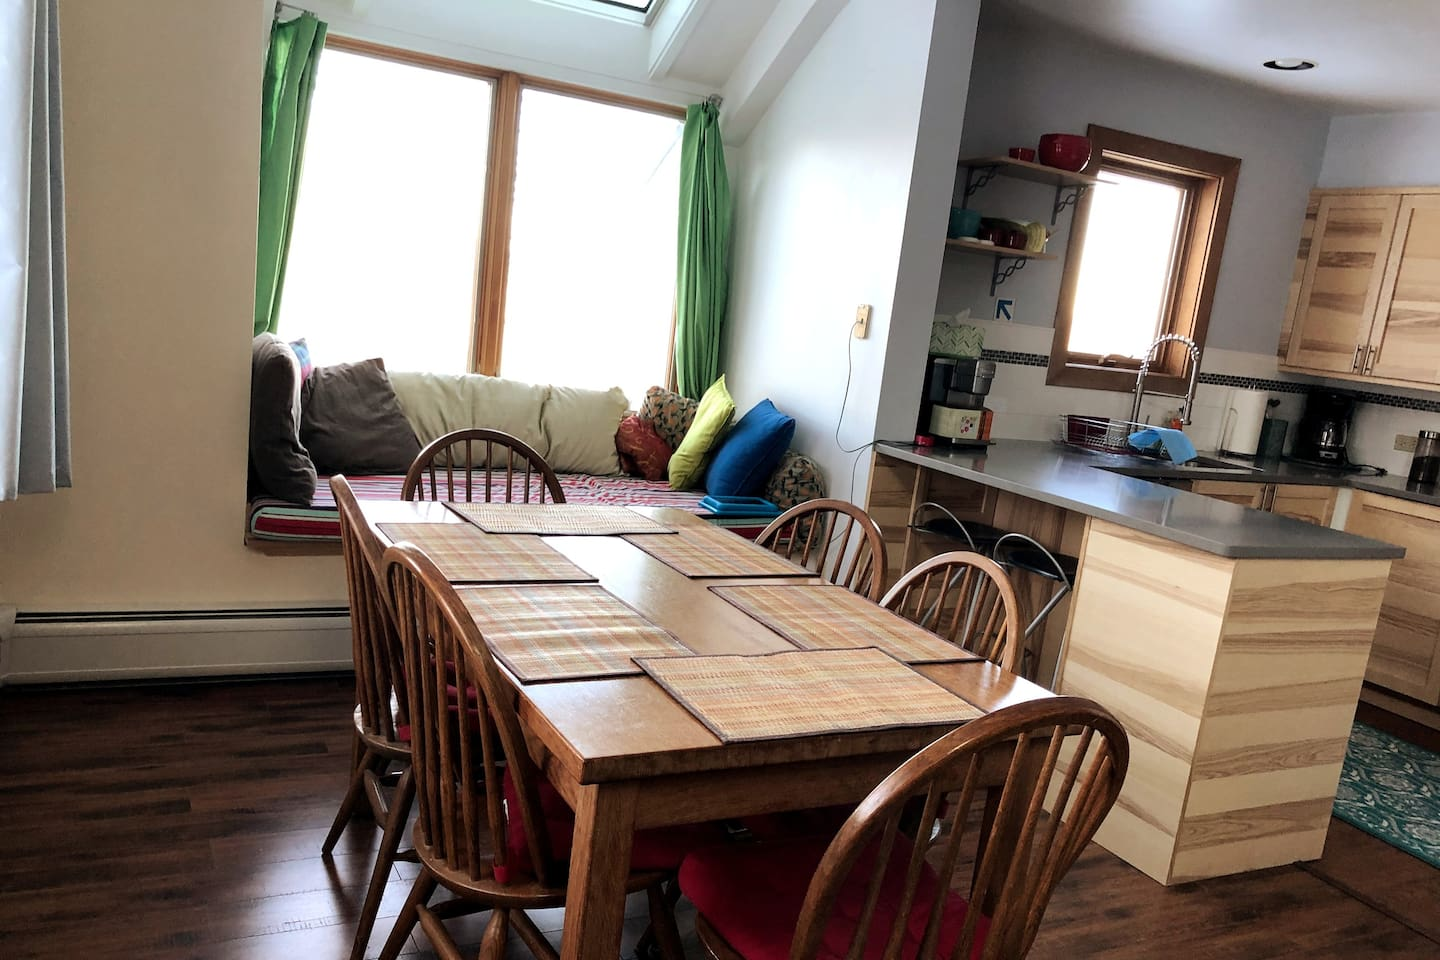 Dining area, kitchen and the window seat